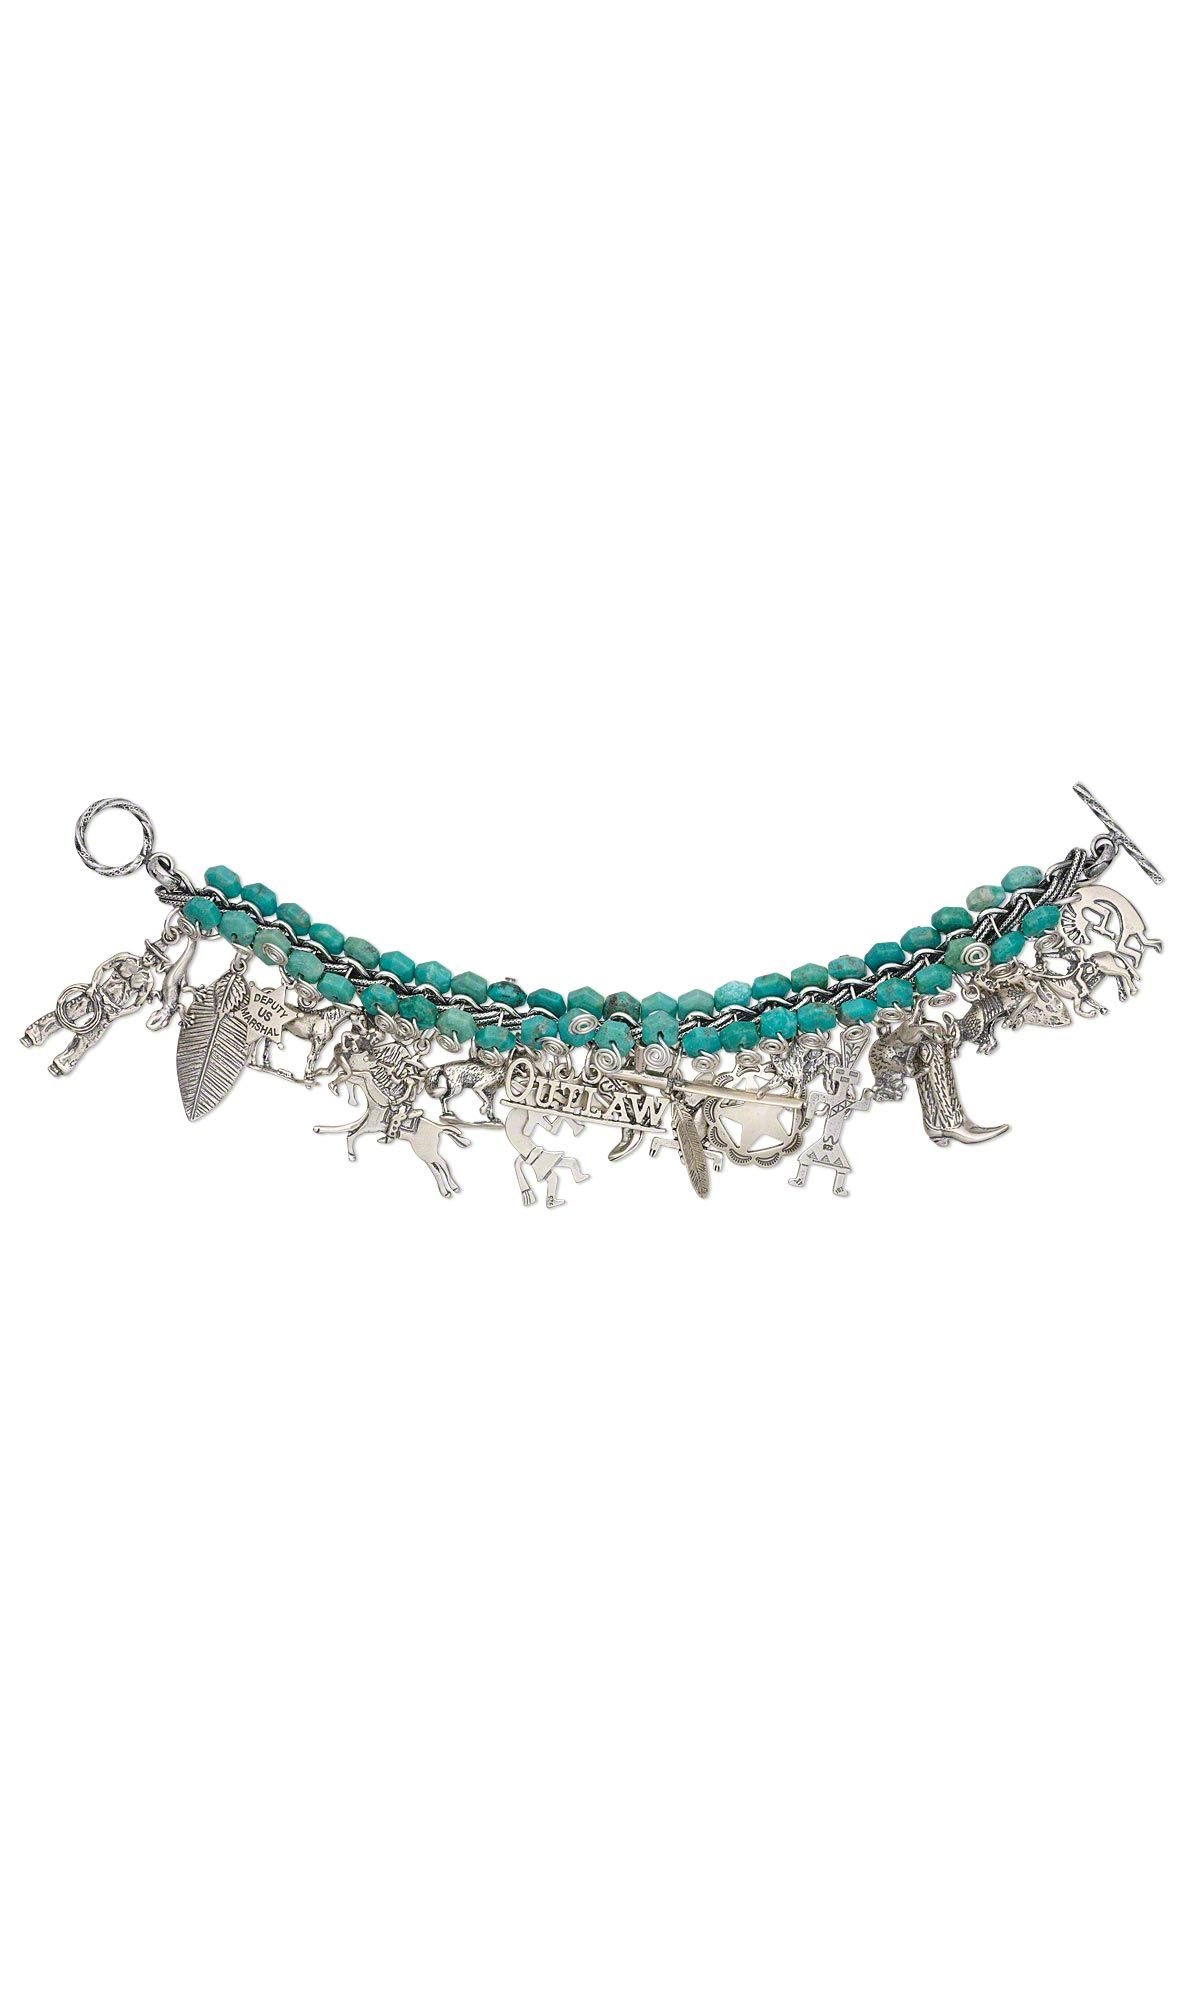 Jewelry design bracelet with sterling silver charms and turquoise